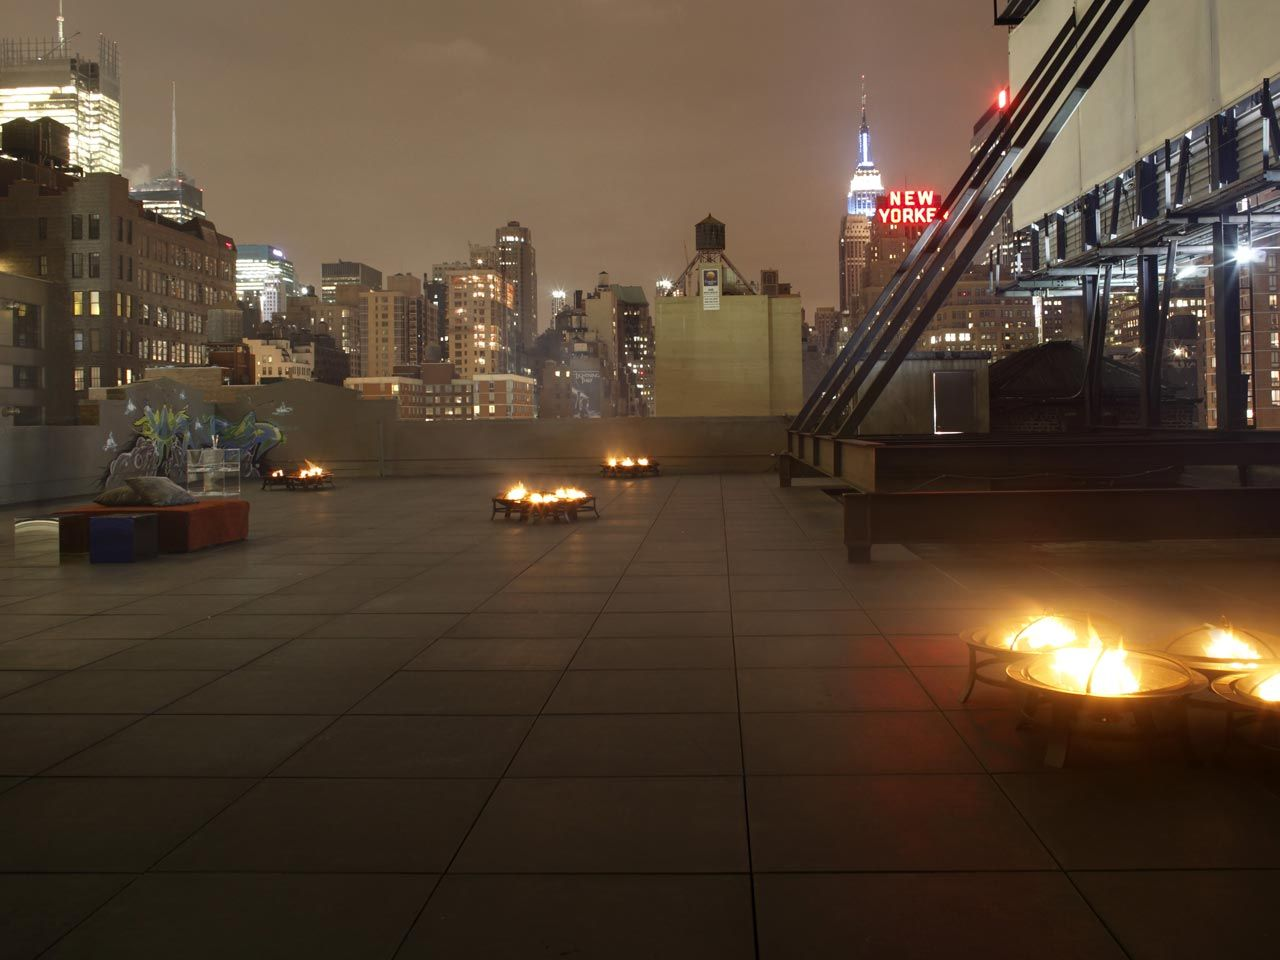 Skylight West New York S Largest Industrial Rooftop Event Space Including Space To Project Video Skylight Event Space Rooftop